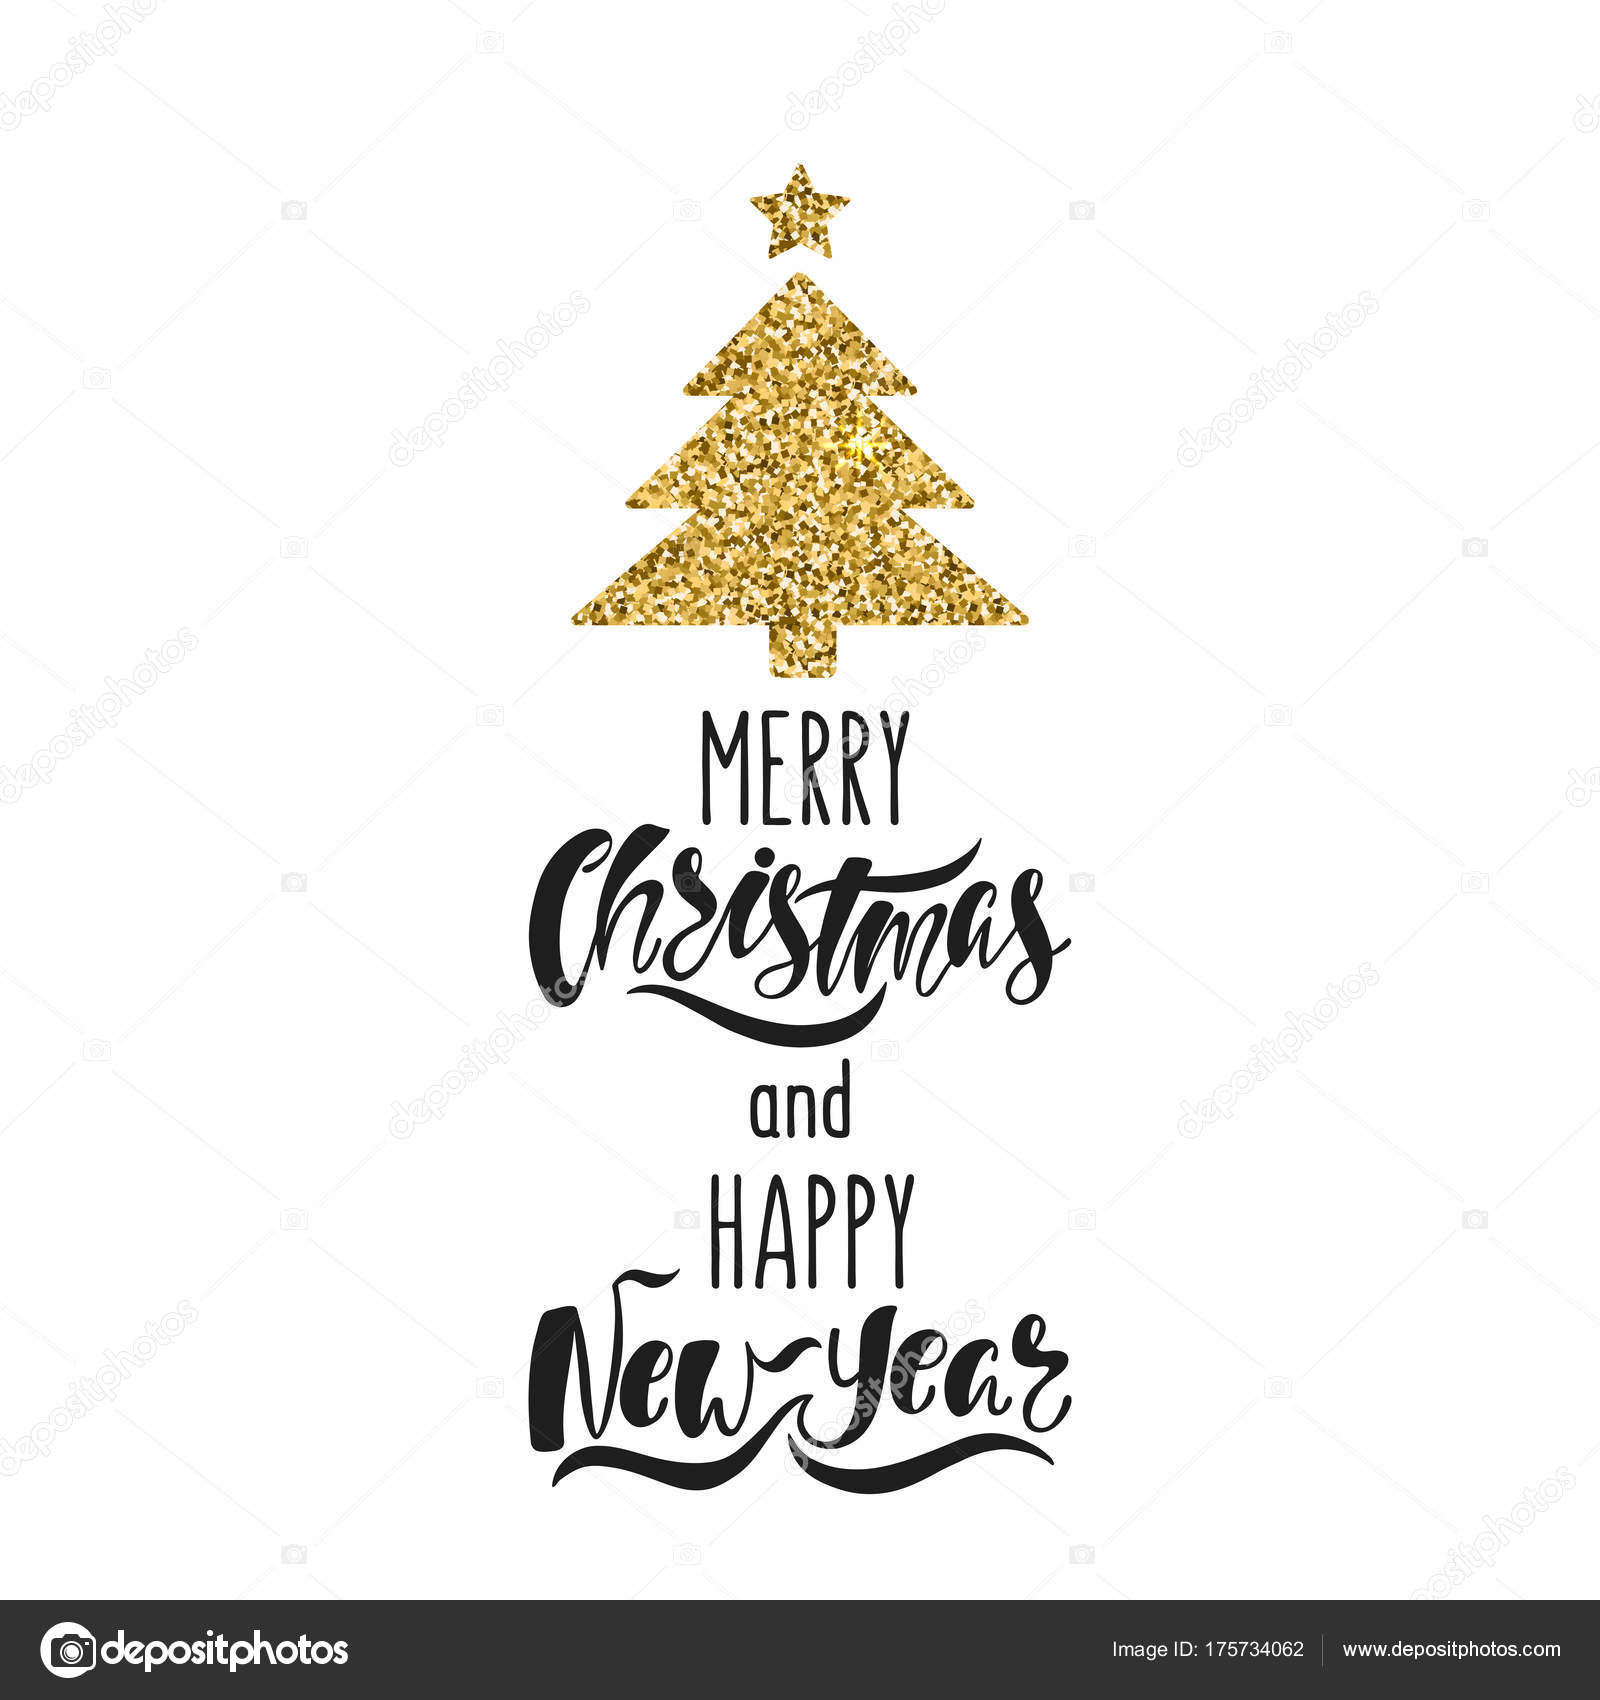 merry christmas and happy new year hand drawn calligraphy text holiday typography design with glitter christmas tree black and gold christmas greeting card stock vector c maroshka 175734062 https depositphotos com 175734062 stock illustration merry christmas and happy new html